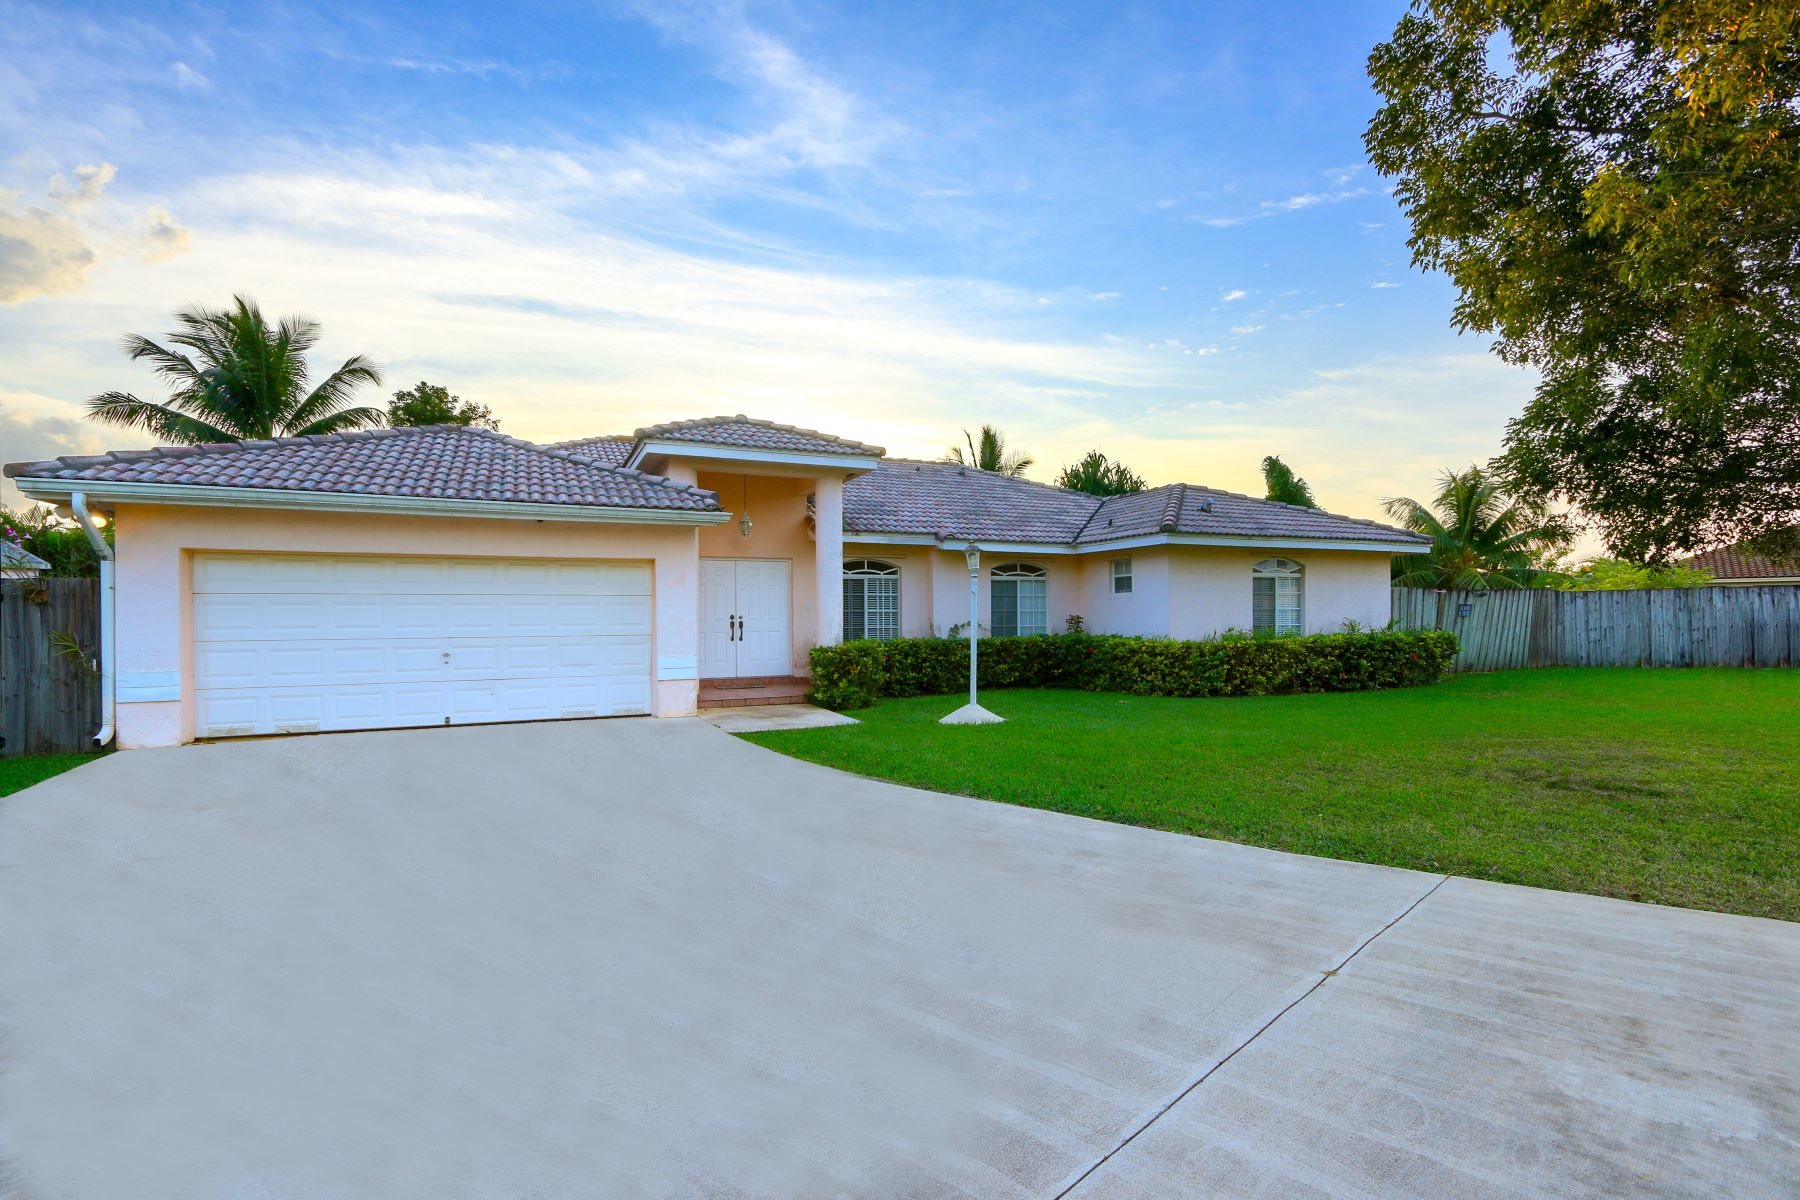 Single Family Home for Sale at 29700 Sw 188th Ct 29700 Sw 188th Ct Homestead, Florida 33030 United States